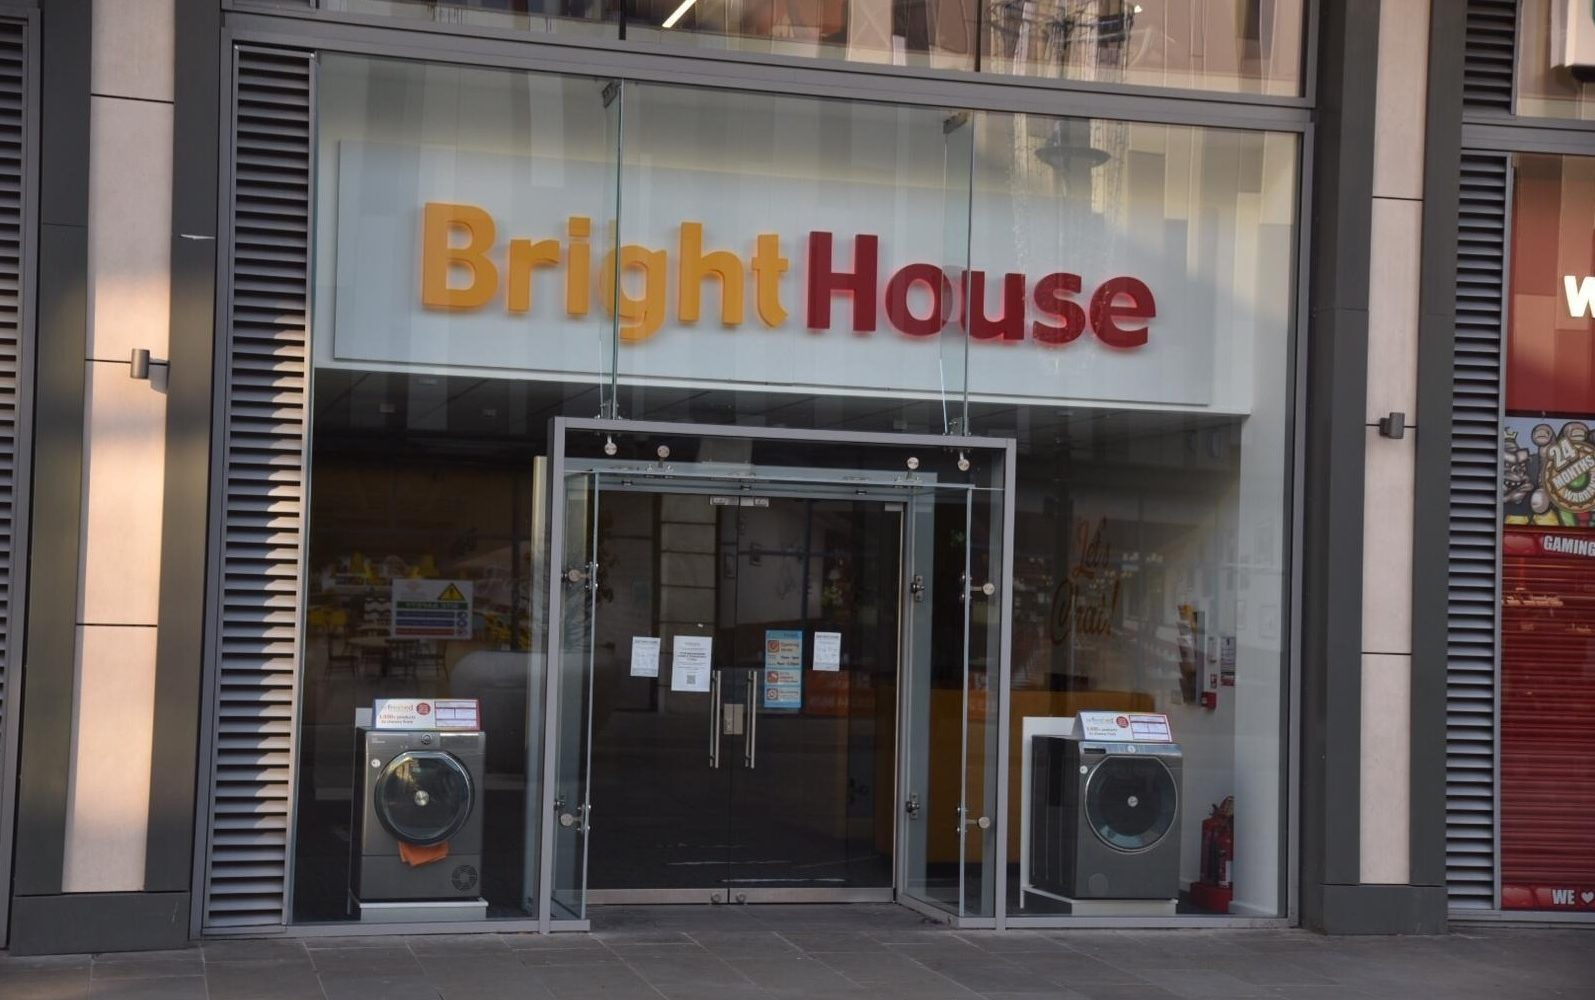 BrightHouse 'is close to collapse'